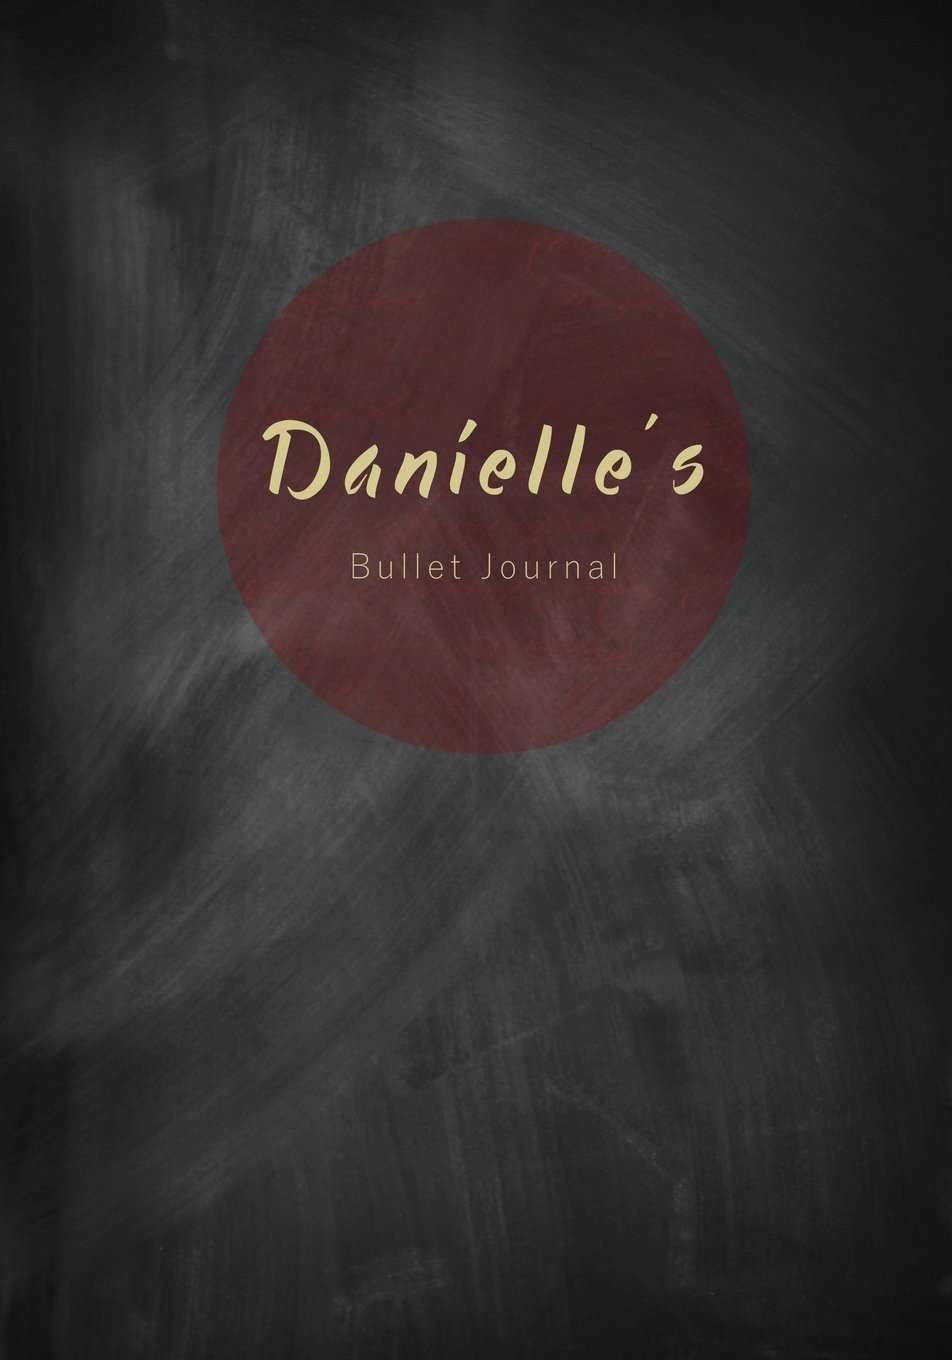 Download Danielle's Bullet Journal: A Personalized Name Dot Grid Notebook/Planner/Organizer (7x10 Inches) (Cute Notebooks, Journals and Other Unique Birthday Best Friend and Other Women and Teen Girls) pdf